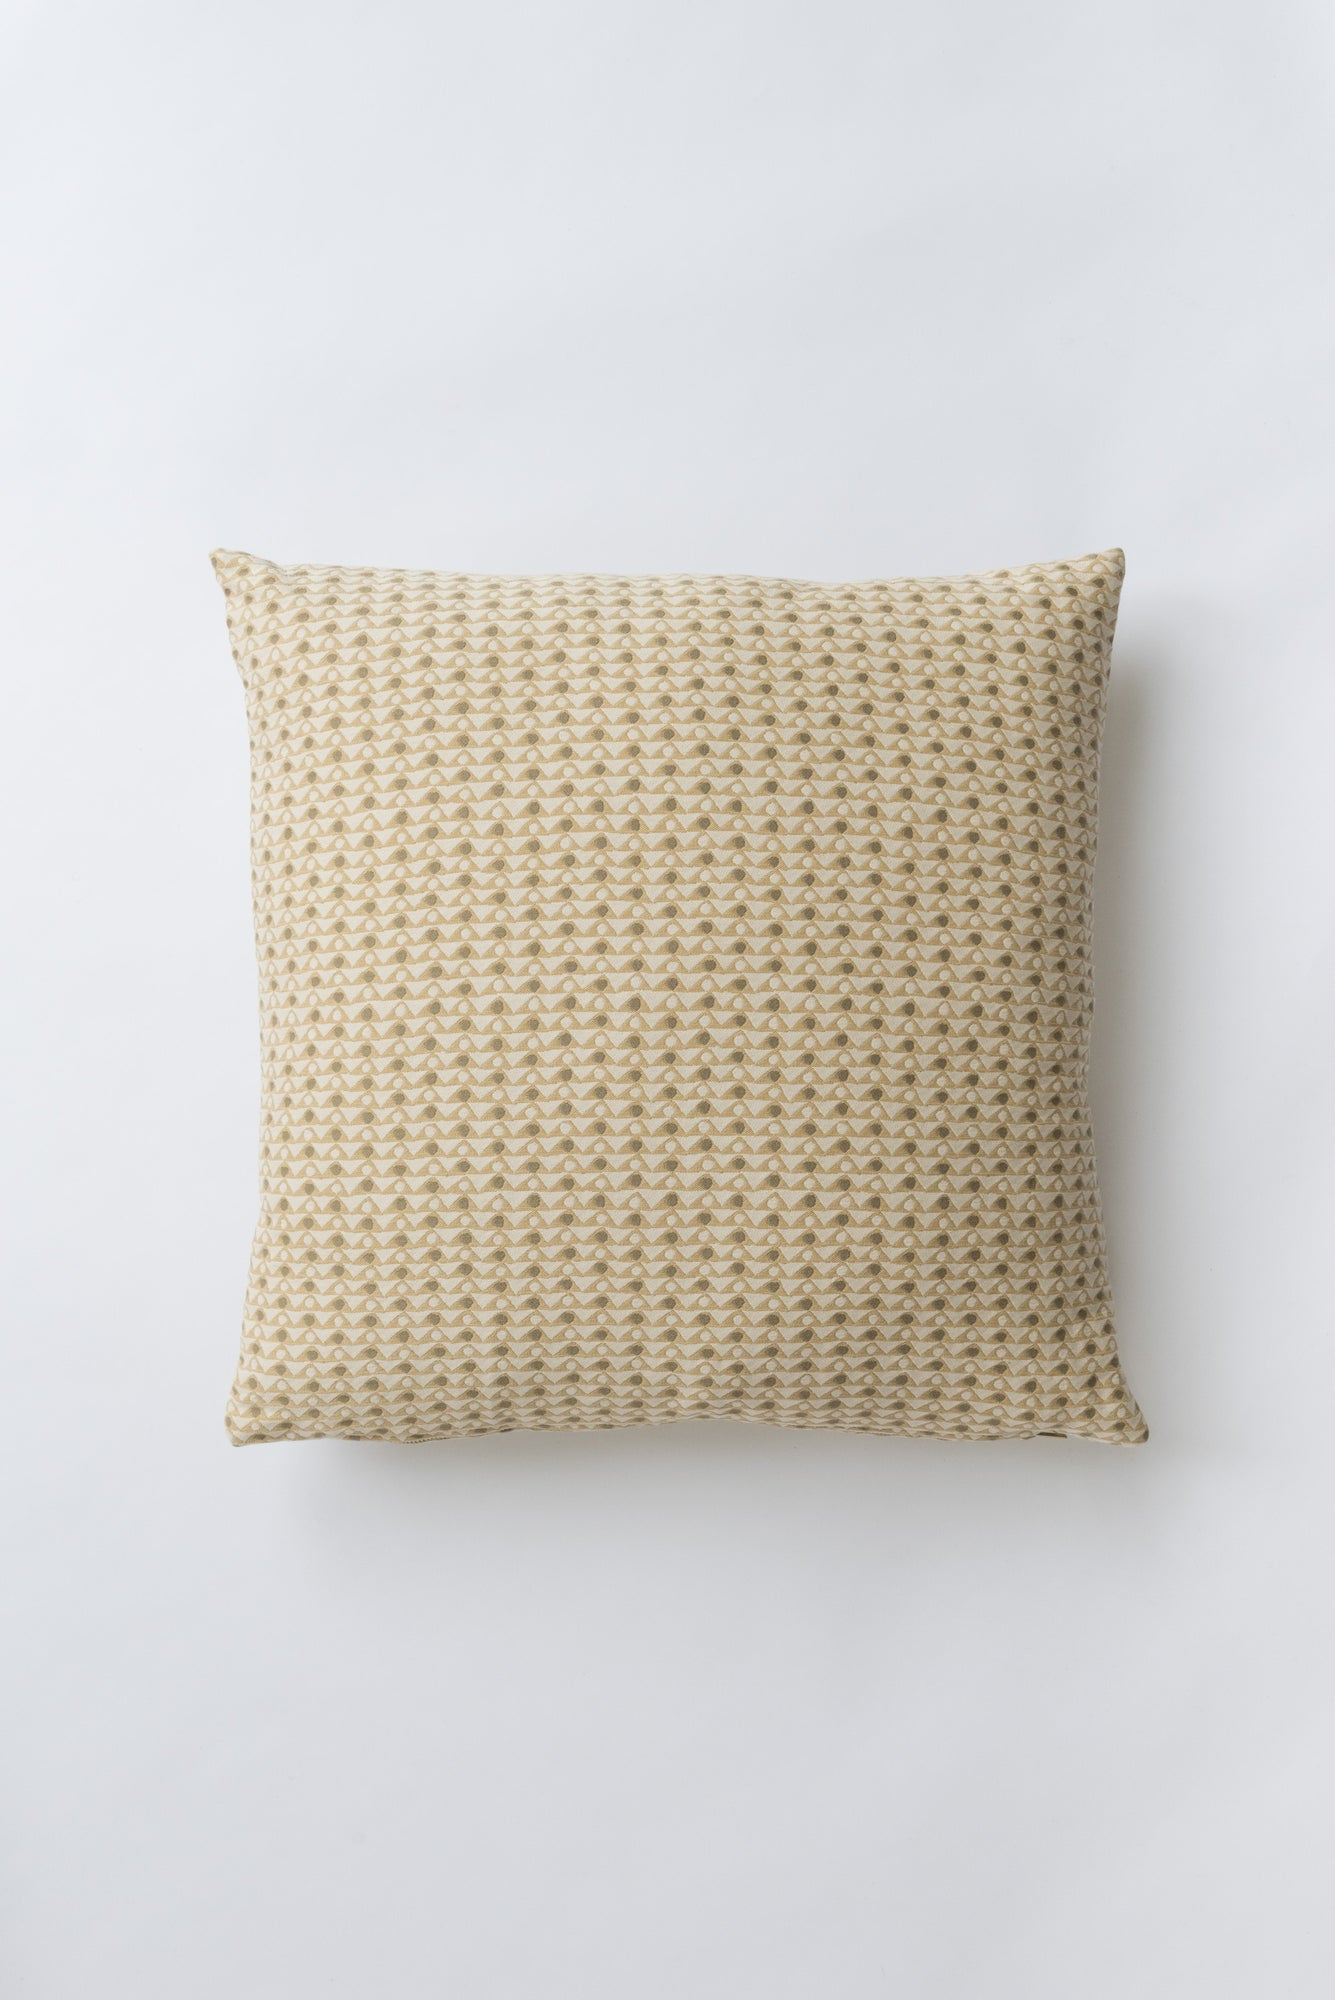 Peacock Raw Sienna Pillow